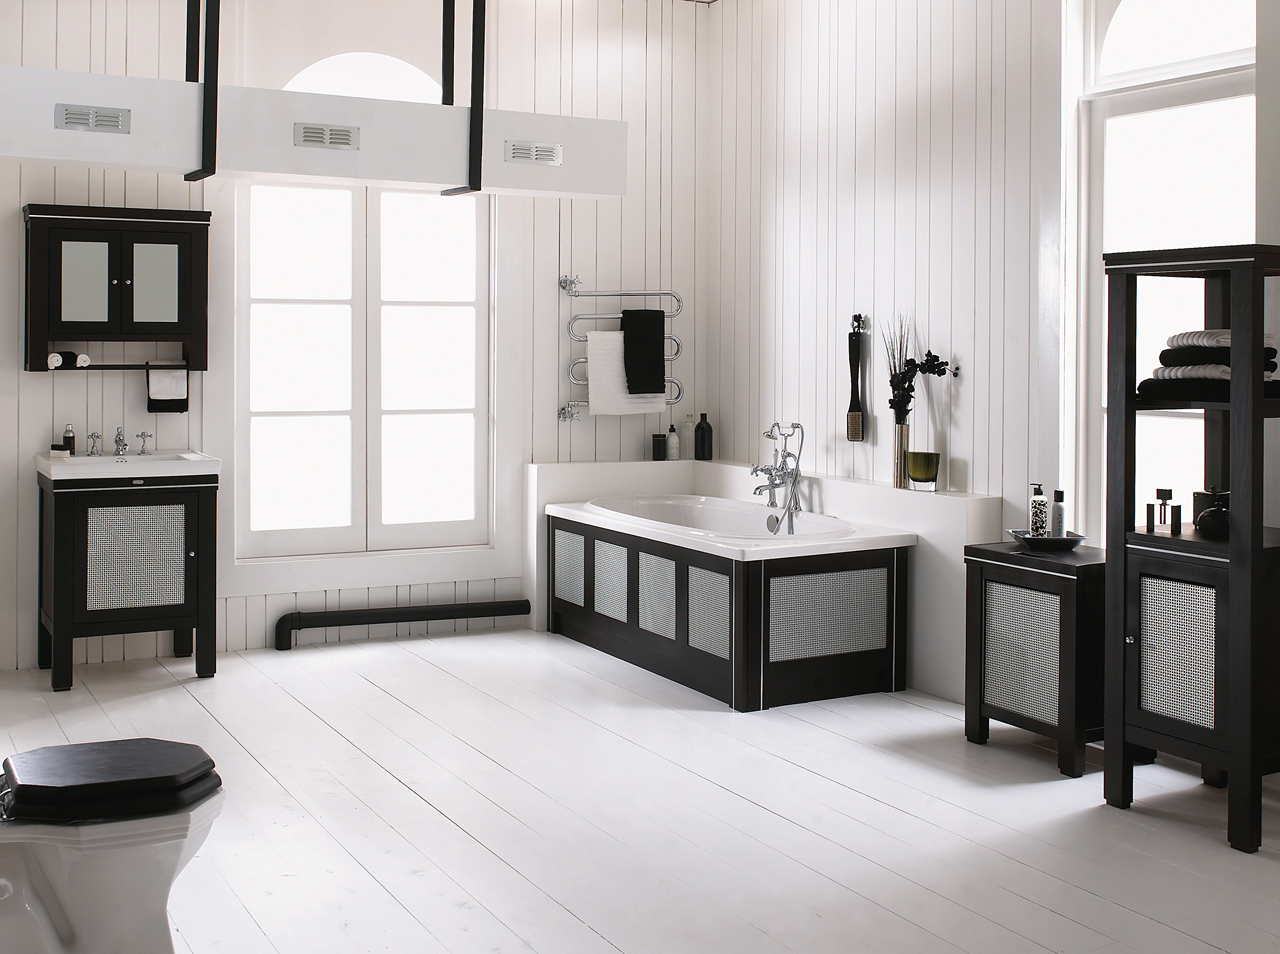 Classic Bathrooms: Imperial Bathrooms - Cuda-wenge-final-main_retouch